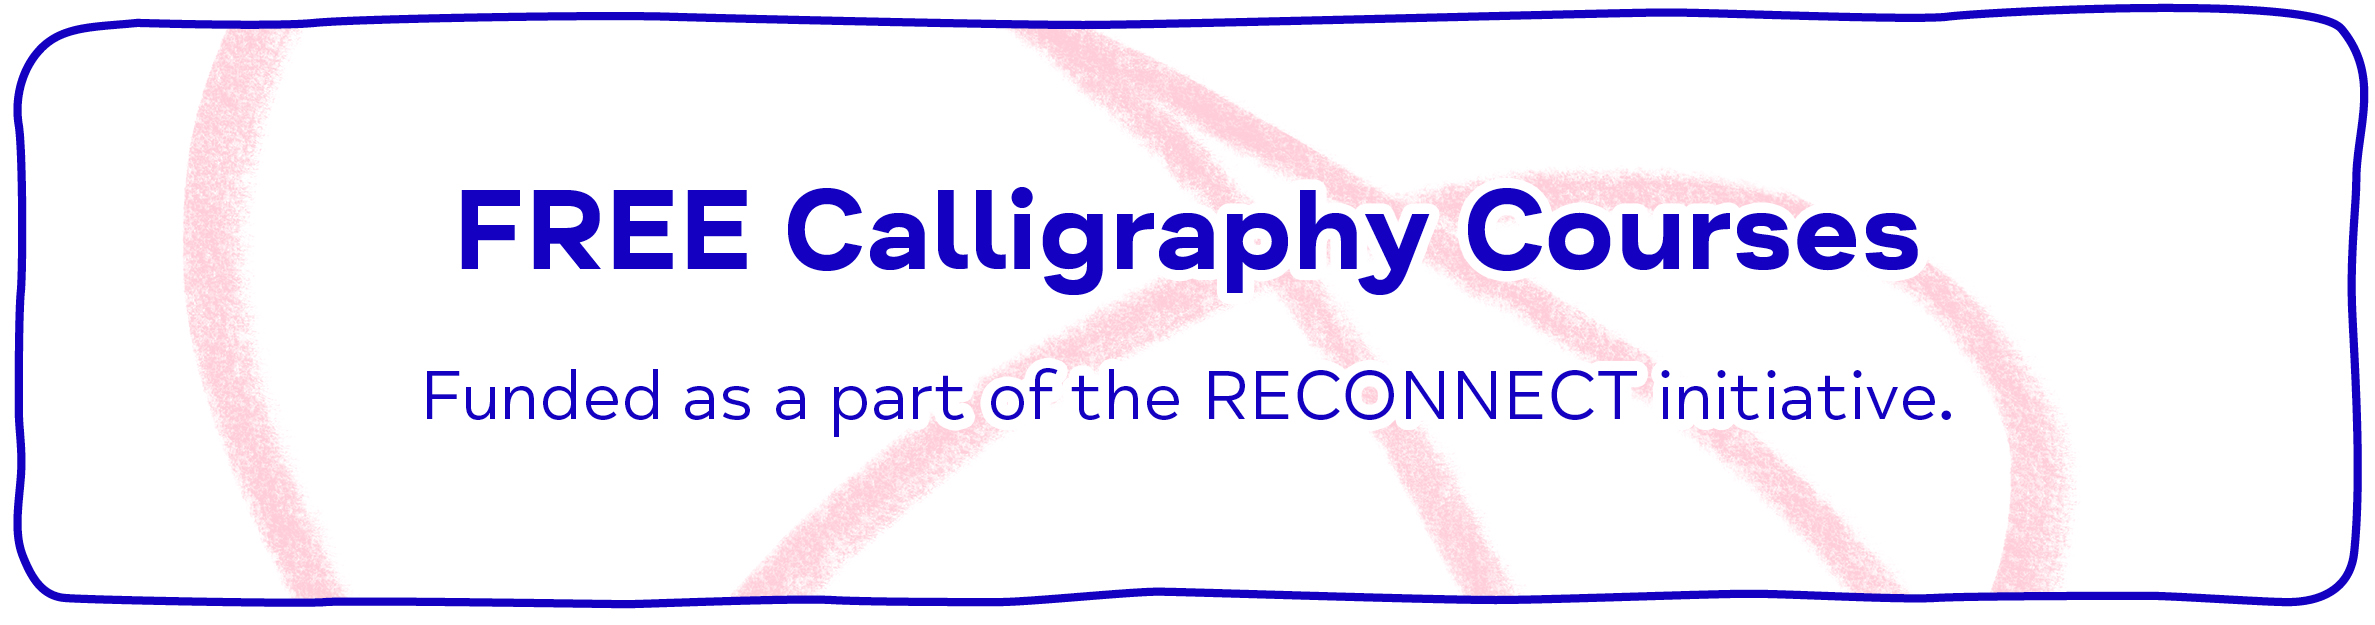 FREE Calligraphy Courses (Reconnect Programme) - Funded as a part of the RECONNECT initiative.